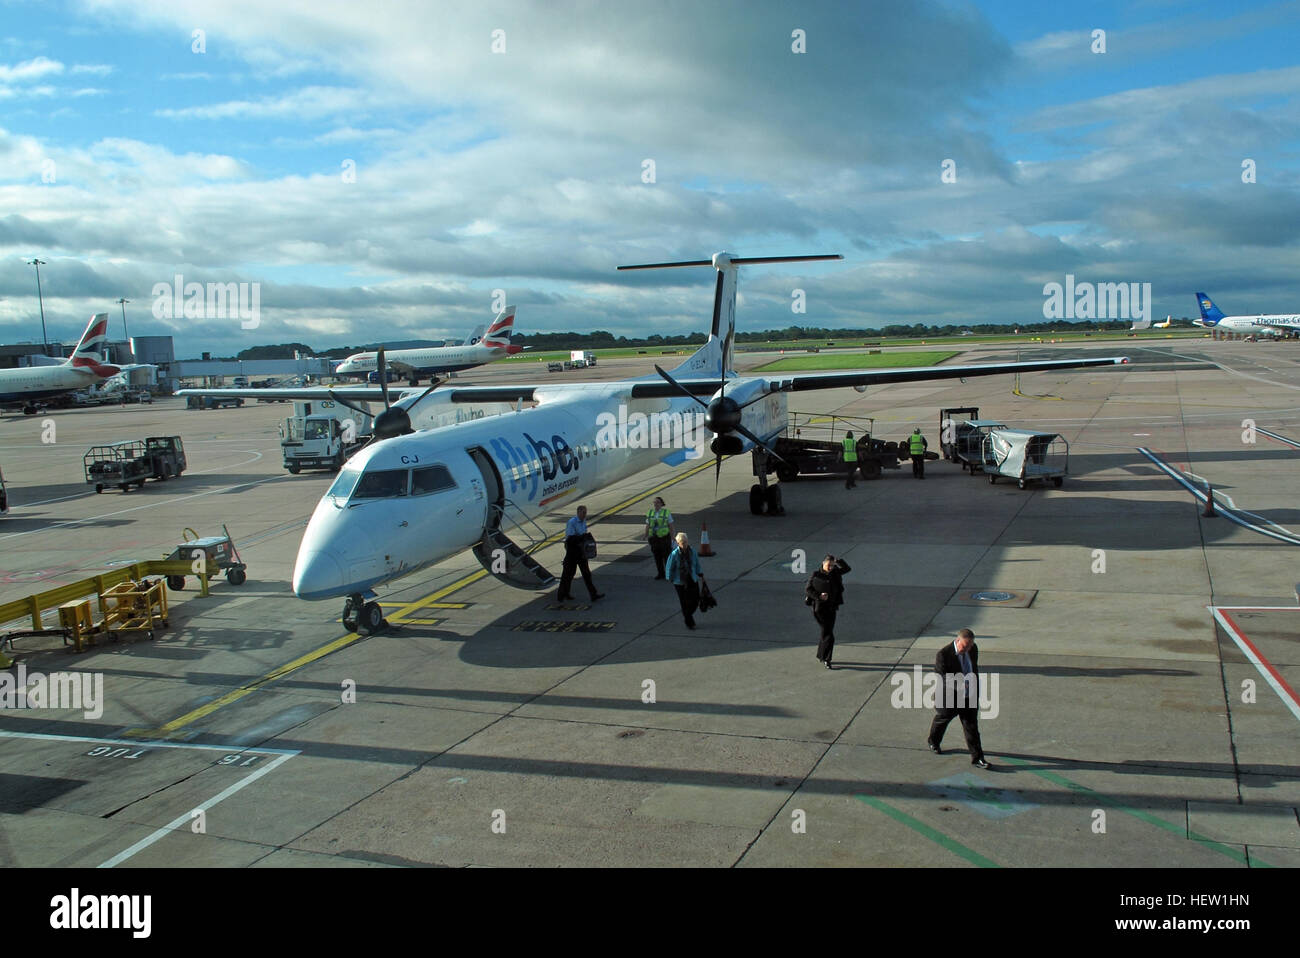 International,Manchester,gate,107,domestic,flight,afternoon,fly,Be,airport,airplane,propeller,G-JECJ,Q400,Dash8,Q-400,runway,a,airline,passengers,customers,leaving,step,steps,Manchester International,Gate 107,Domestic Flight,British European,GoTonySmith,@HotpixUK,Tony,Smith,UK,GB,Great,Britain,United,Kingdom,English,British,England,problem,with,problem with,issue with,Manchester,transport,integrated infrastructure,travel,transit,infrastructure,airport,apron,jet,fuel,arrive,flight,flights,flyers,customer,cloud,cloudy,skies,clear,walk,walking,walkers,Domestic,Terminal,1st,first,Buy Pictures of,Buy Images Of,Images of,Stock Images,Tony Smith,United Kingdom,Great Britain,British Isles,Domestic Terminal,1st Passenger,to leave,Walker Aviation Limited